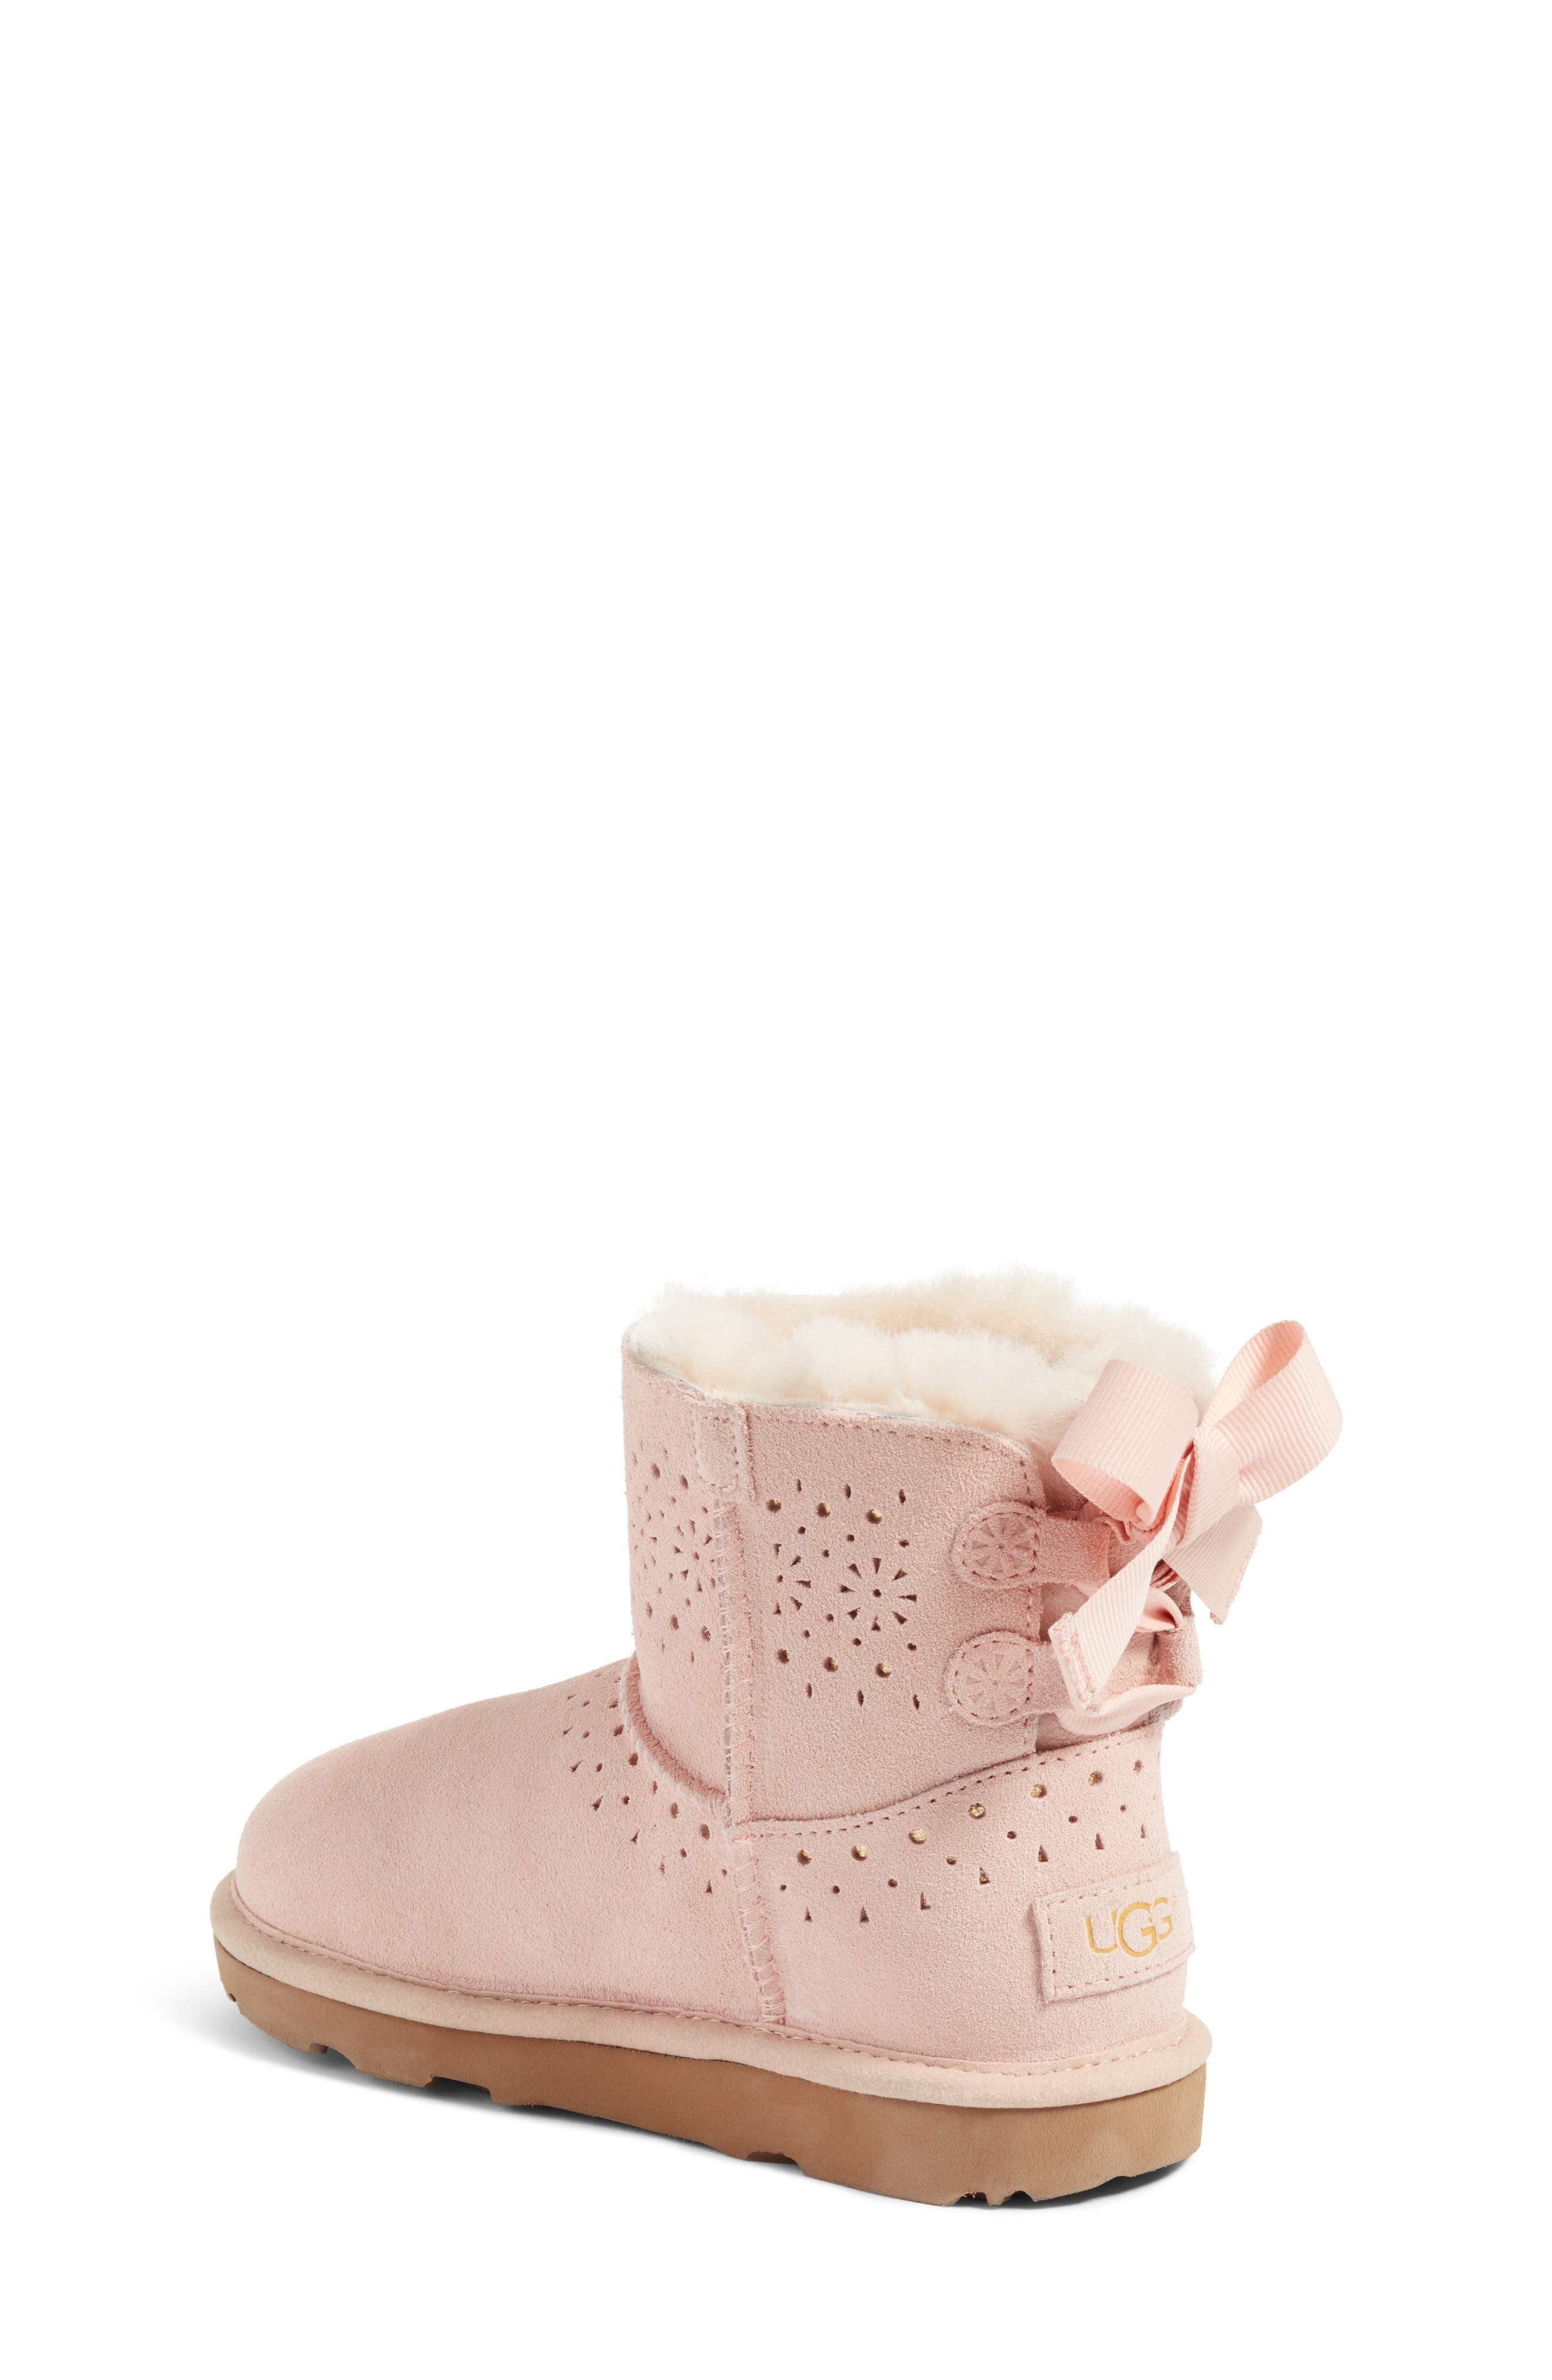 Dae Perforated Tie Back Boot,                             Alternate thumbnail 3, color,                             Baby Pink